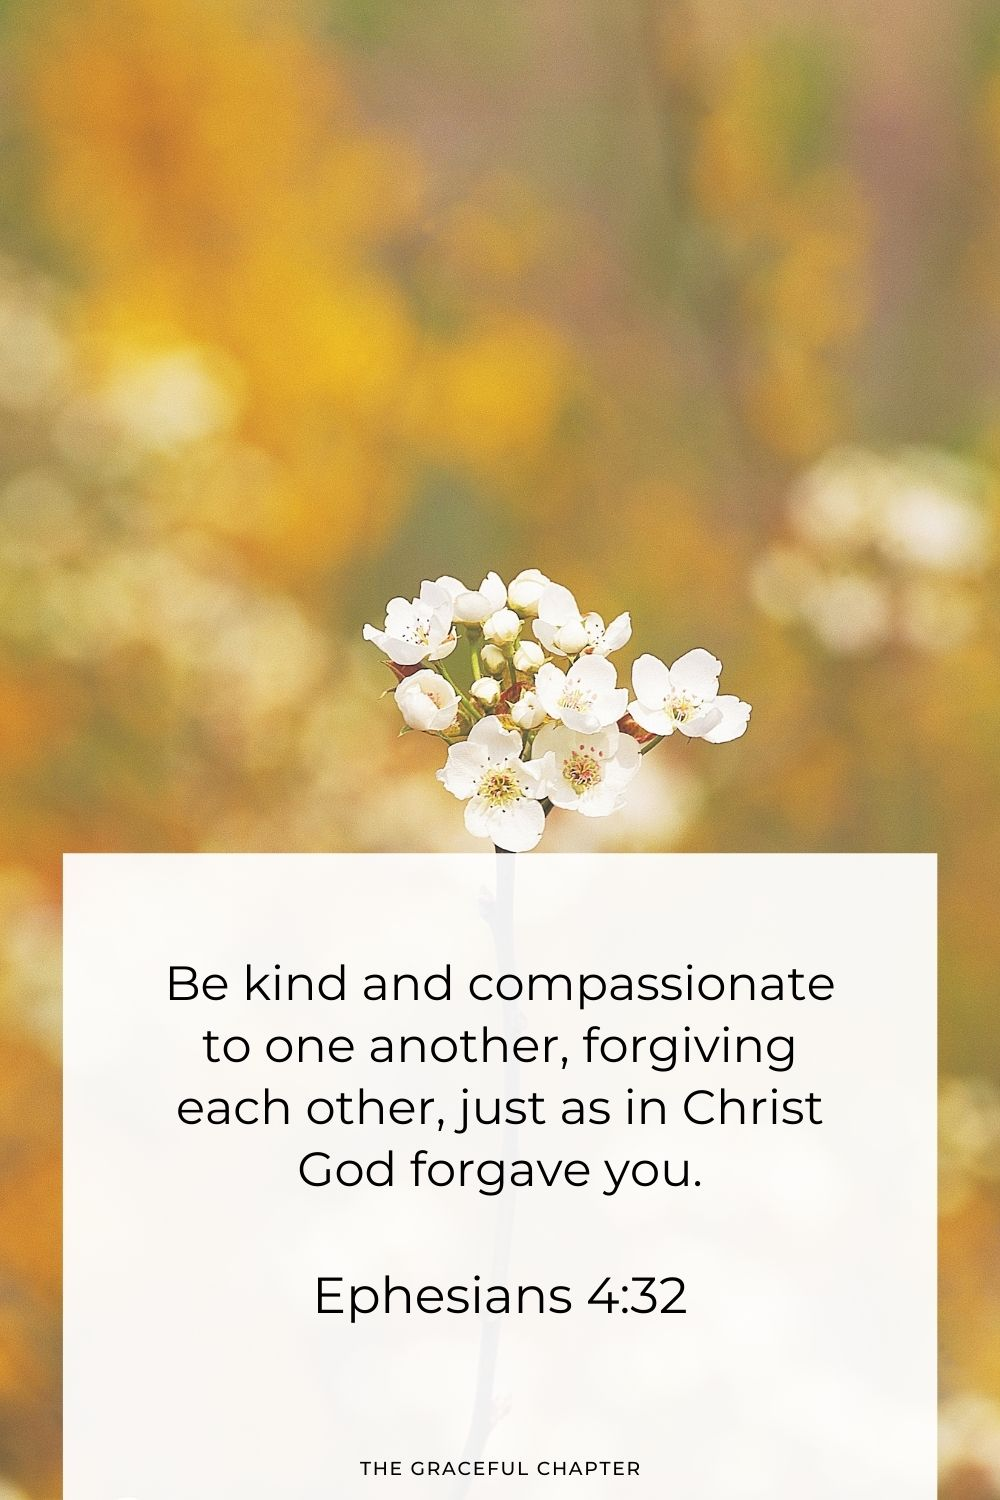 Be kind and compassionate to one another, forgiving each other, just as in Christ God forgave you. Ephesians 4:32